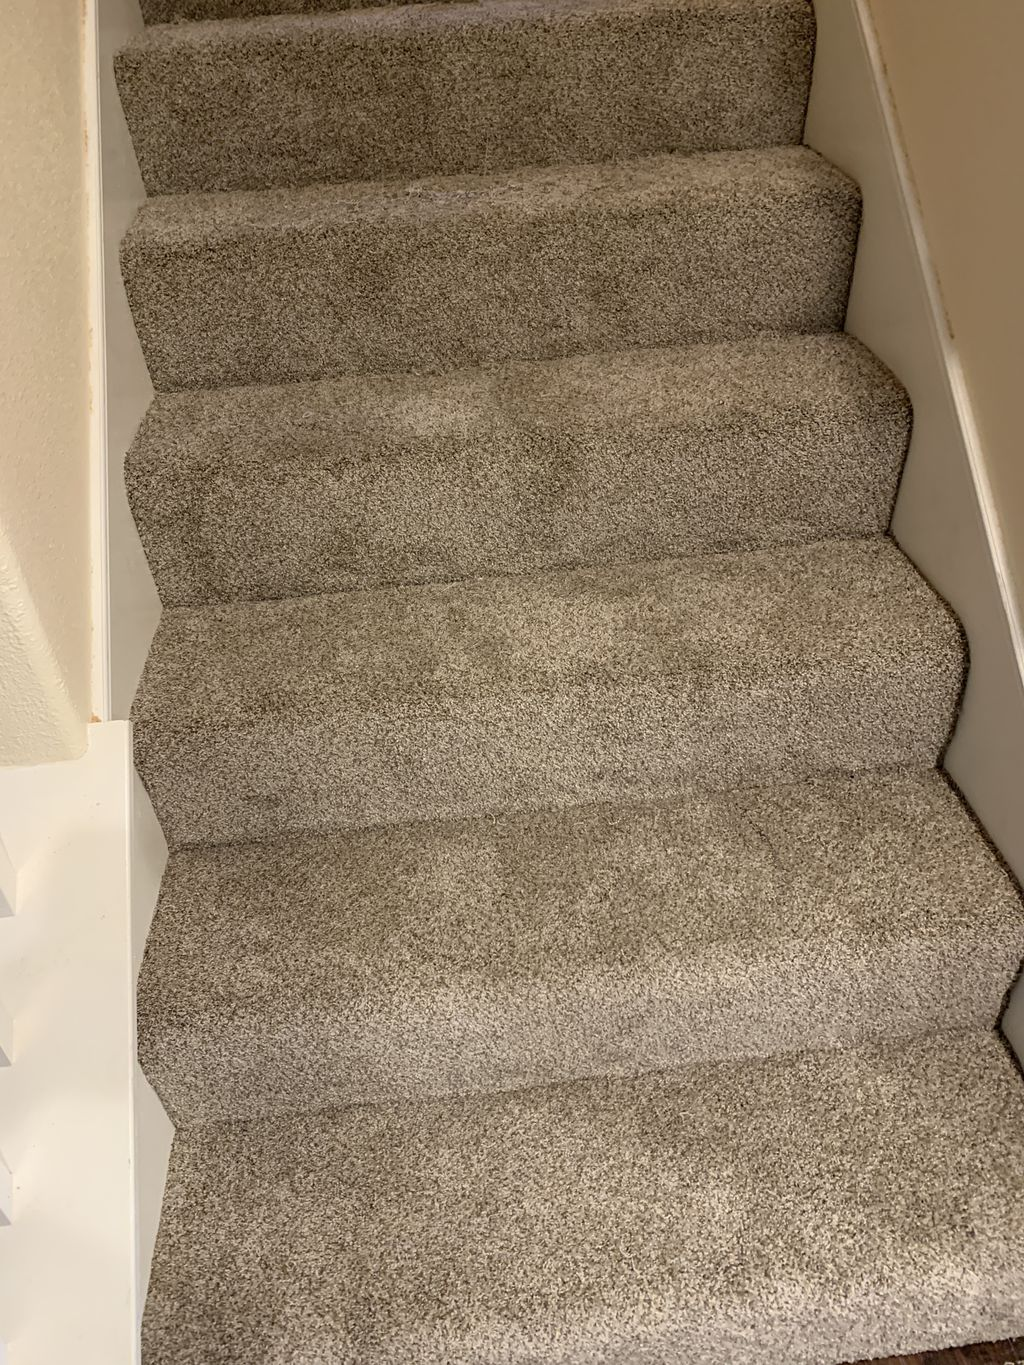 25 stairs